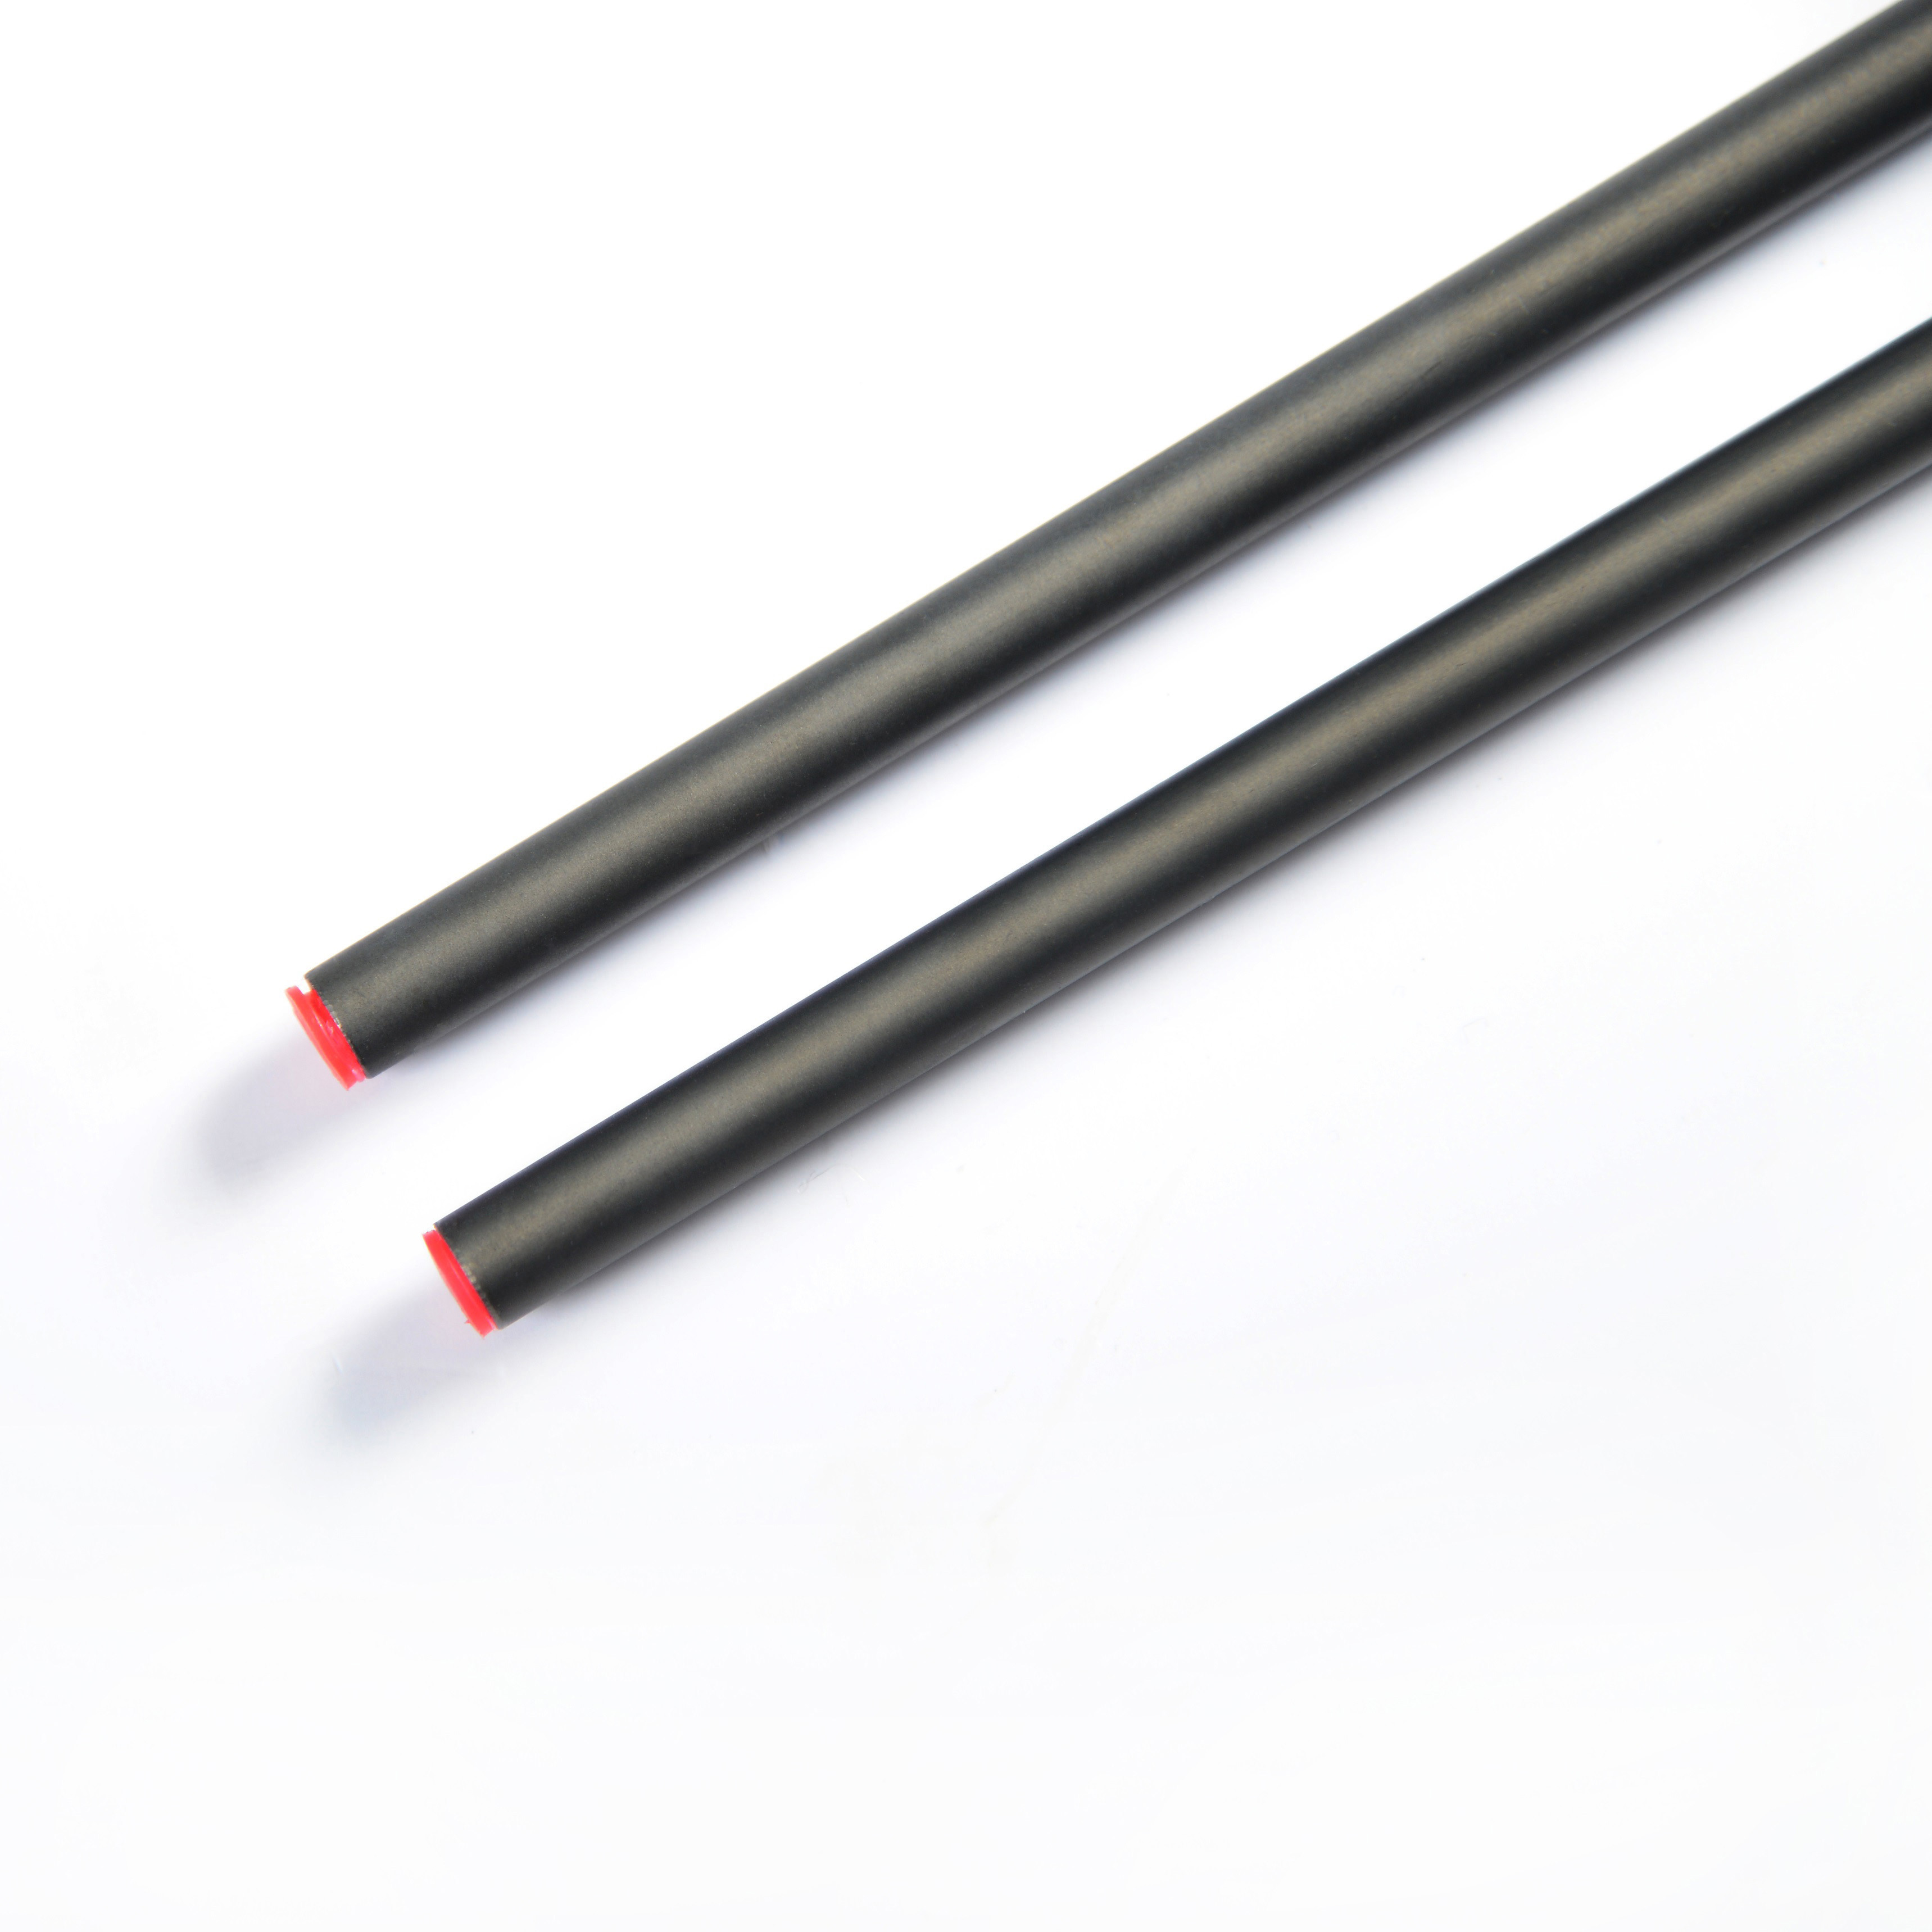 EN 10305-4 Tubes for hydraulic and pneumatic power systems